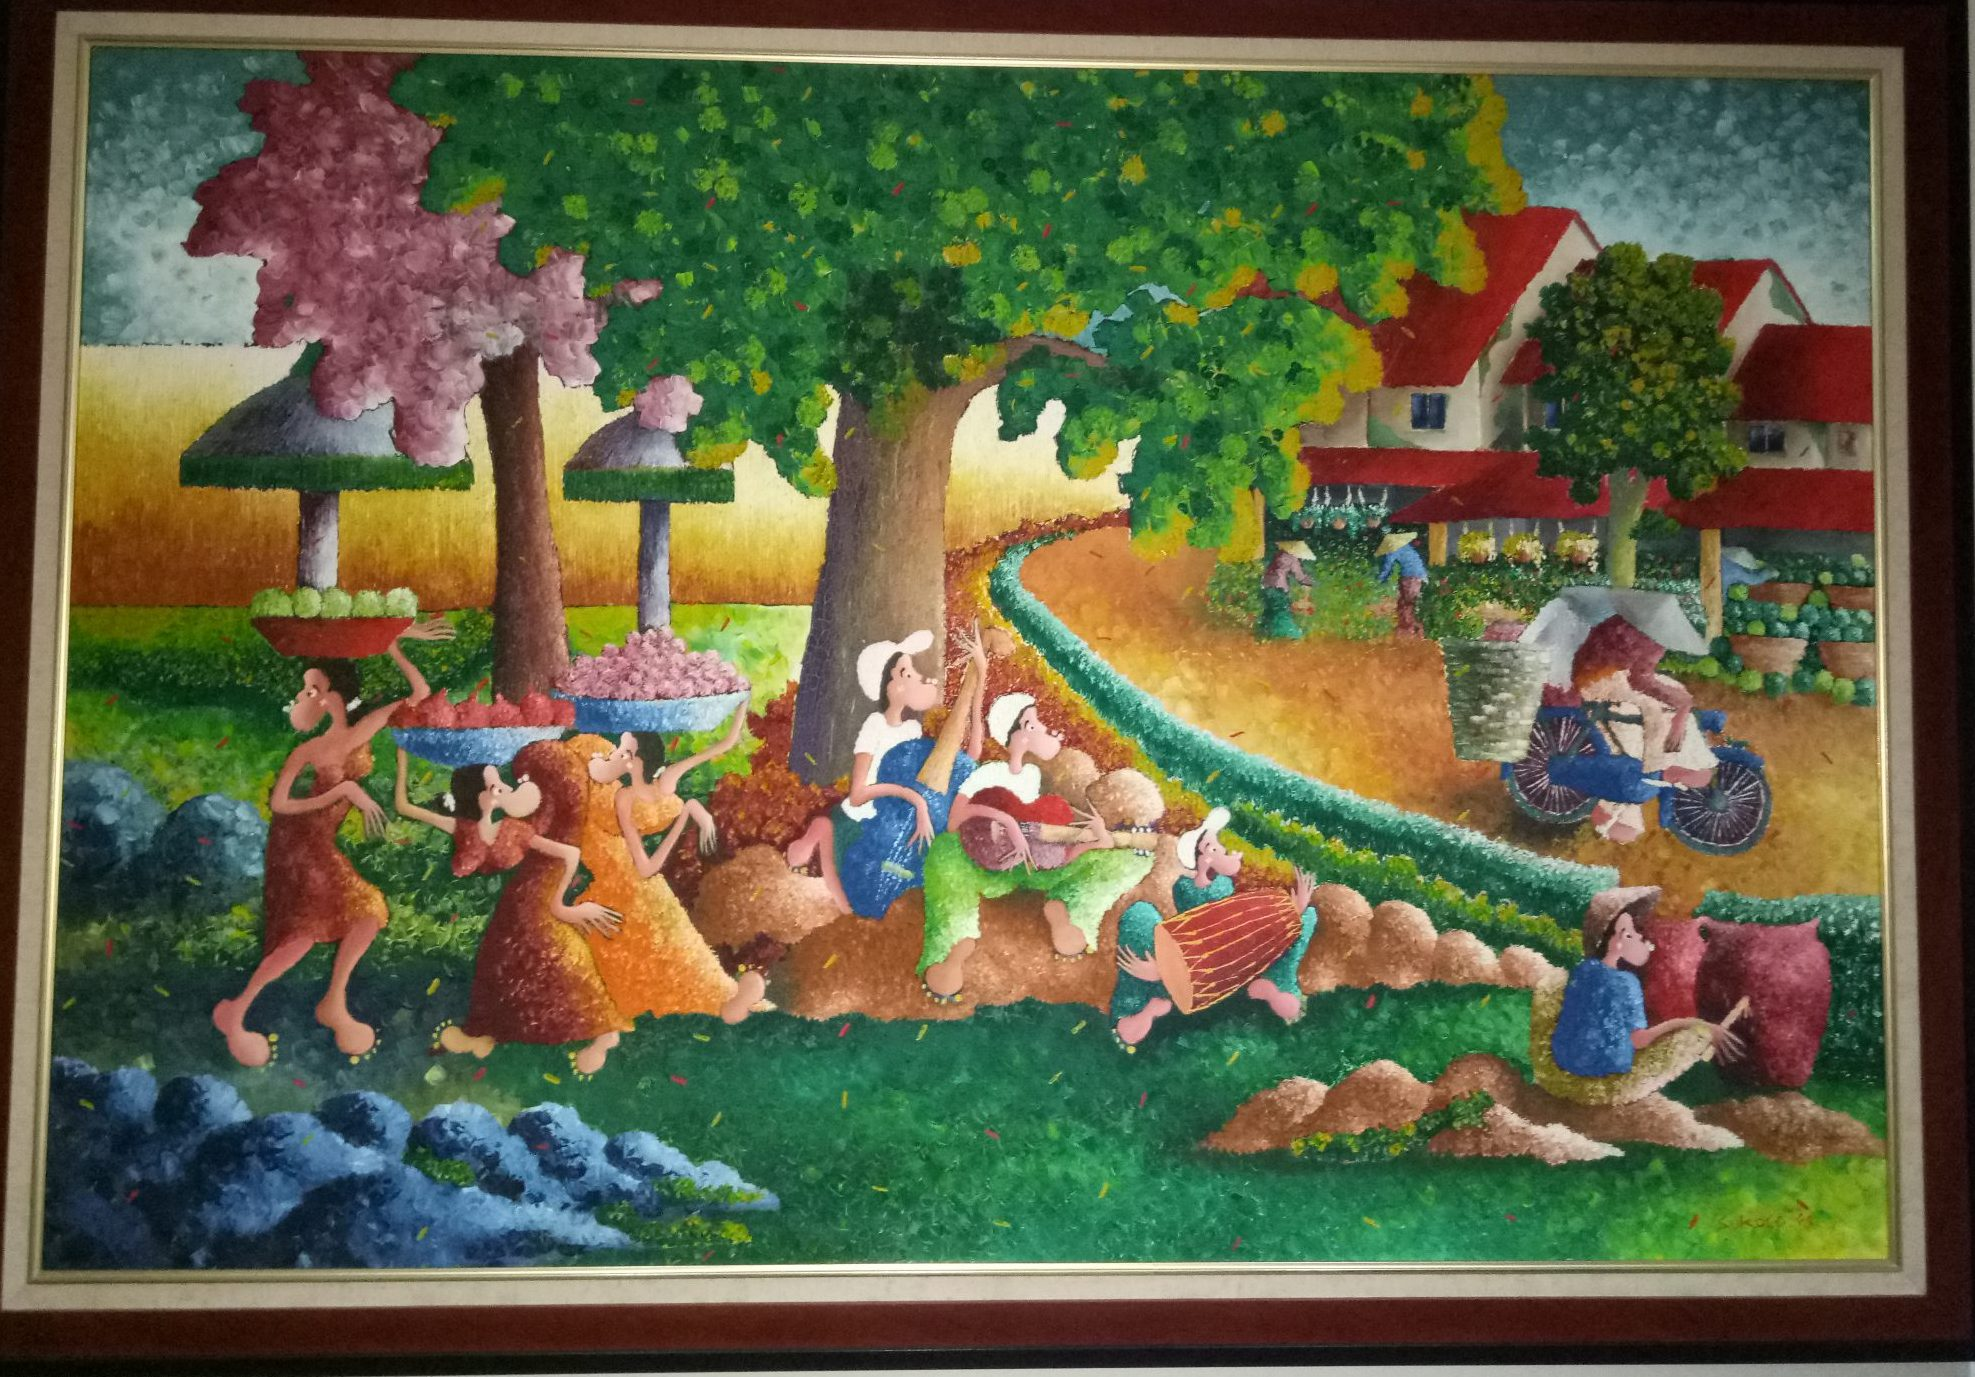 Suasana Kampung, Artist: Sukoco Wibowo (2009), oil on canvas